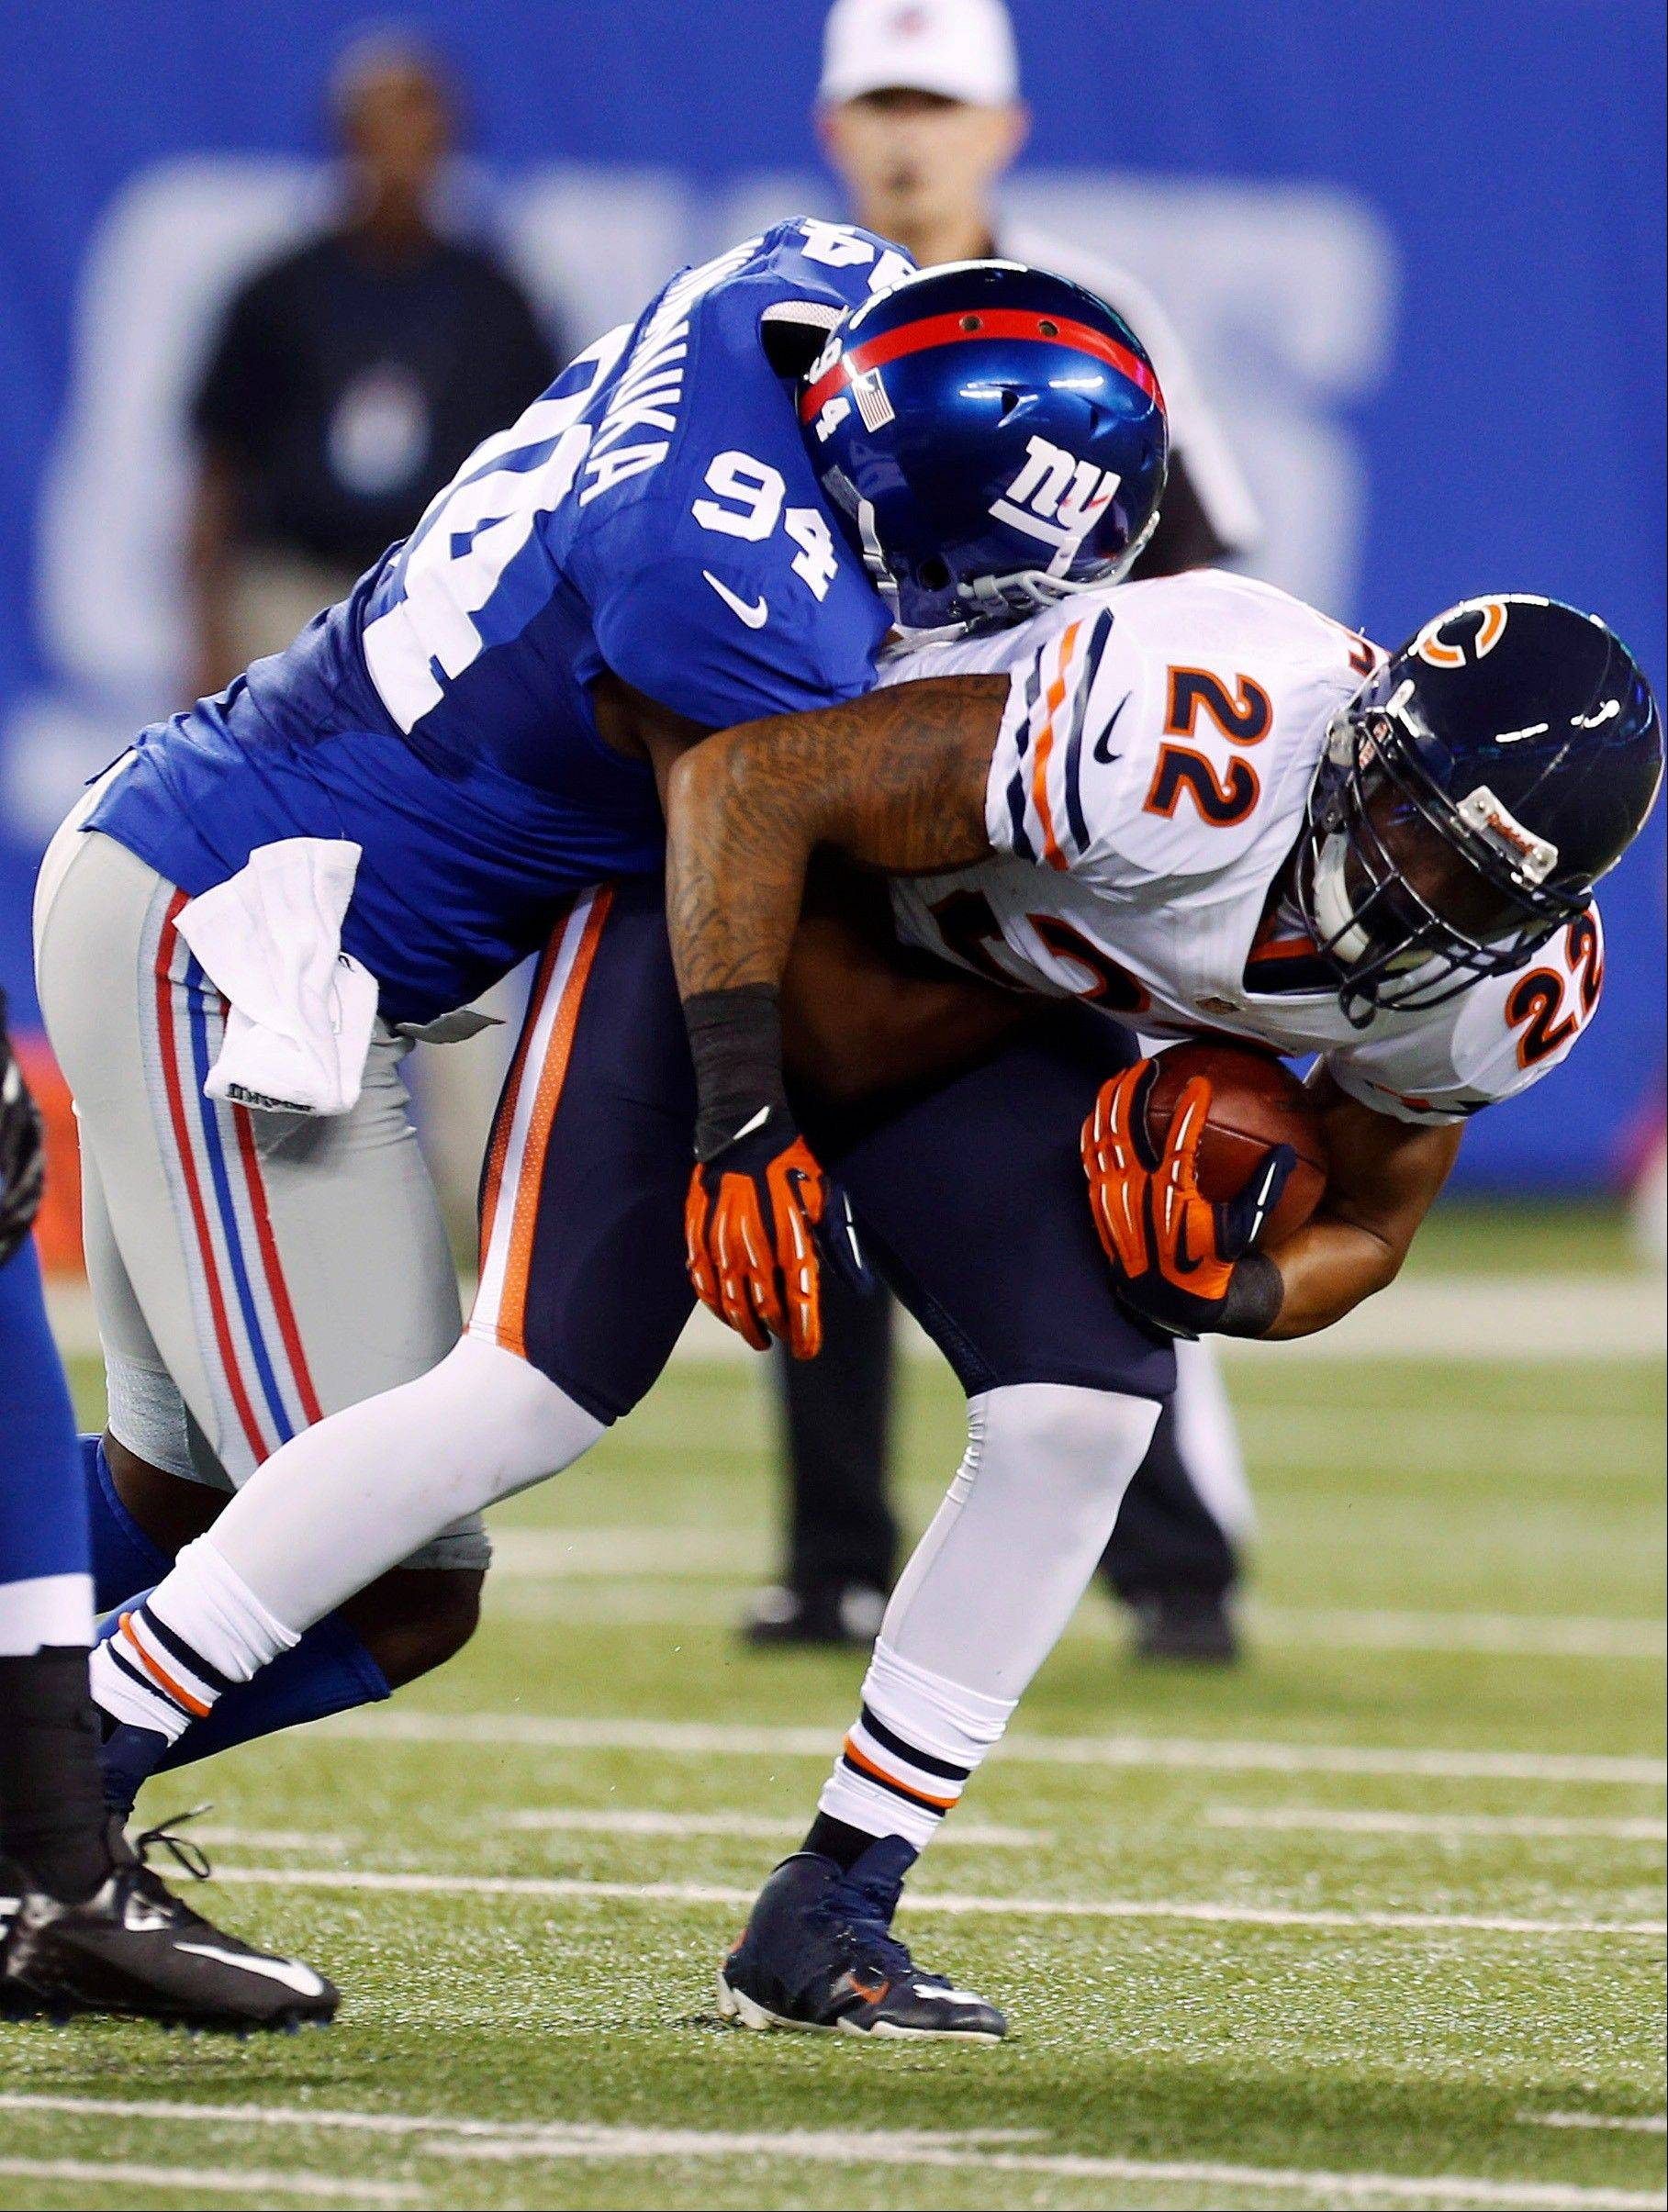 Bears running back Matt Forte (22) is tackled by New York Giants linebacker Mathias Kiwanuka (94) during the first half of an NFL preseason football game Friday, Aug. 24, 2012, in East Rutherford, N.J.